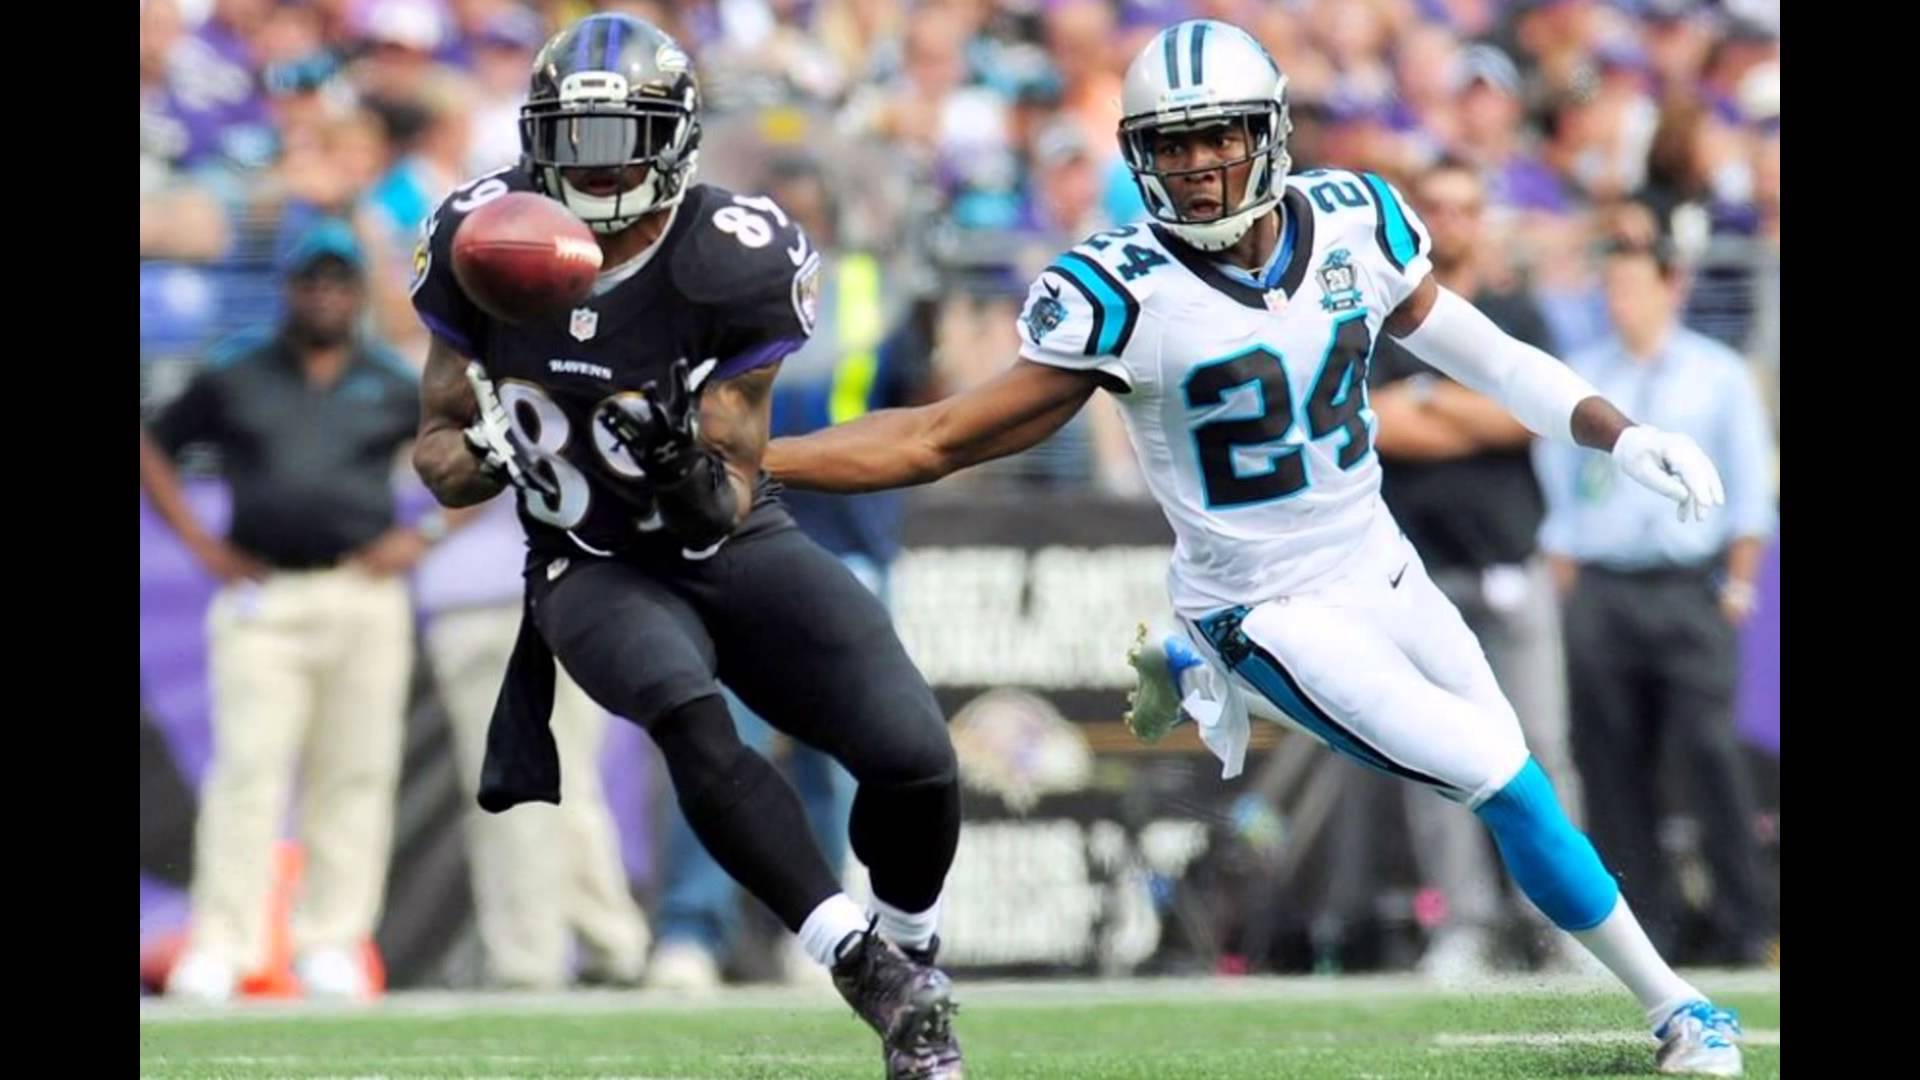 End of 3rd: Buccaneers 13, Panthers 3